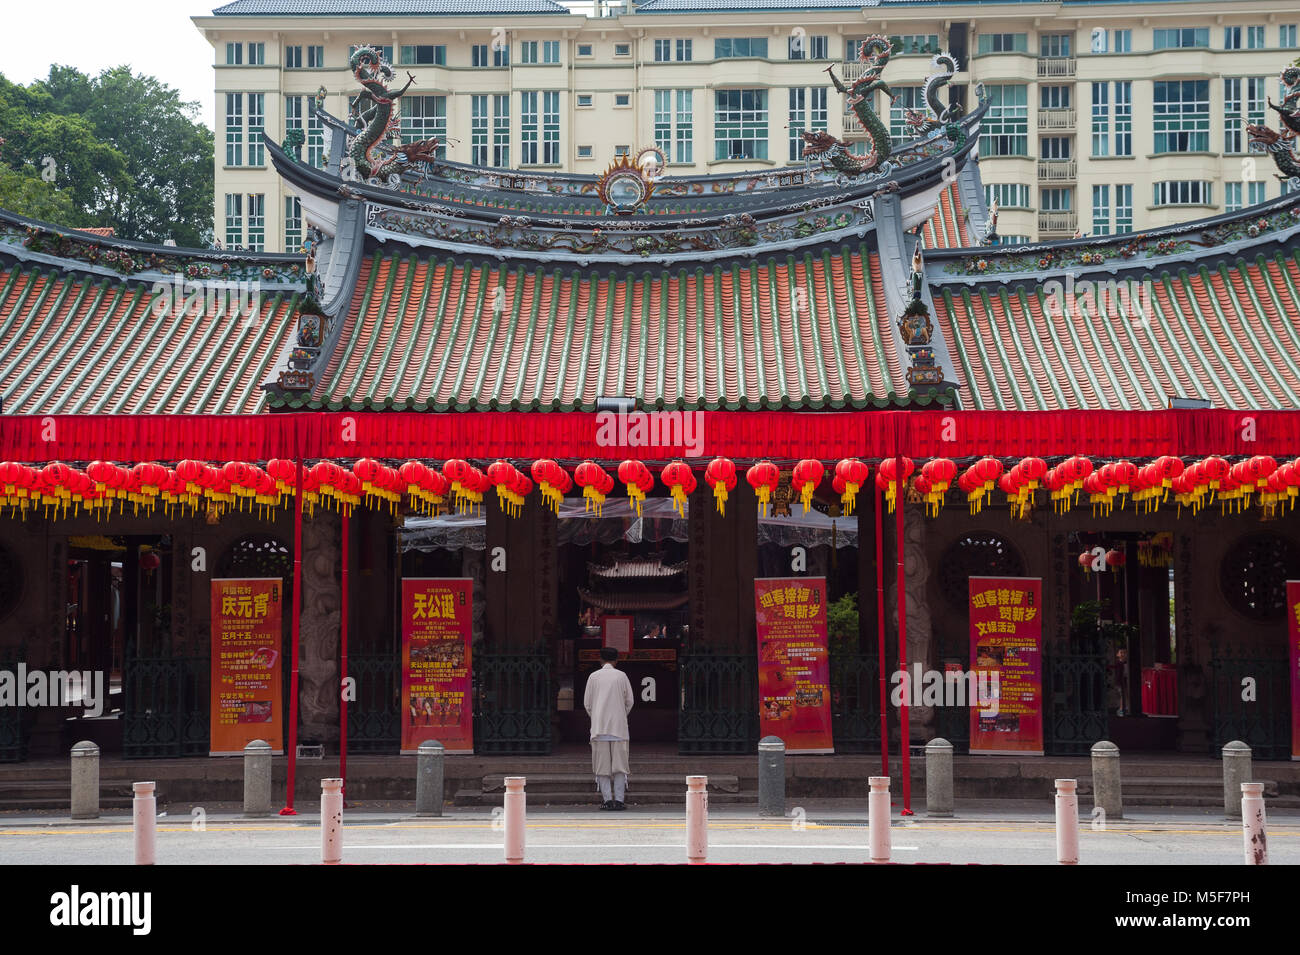 10.02.2018, Singapore, Republic of Singapore, Asia - The Thian Hock Keng Temple in Singapore's Chinatown district. - Stock Image